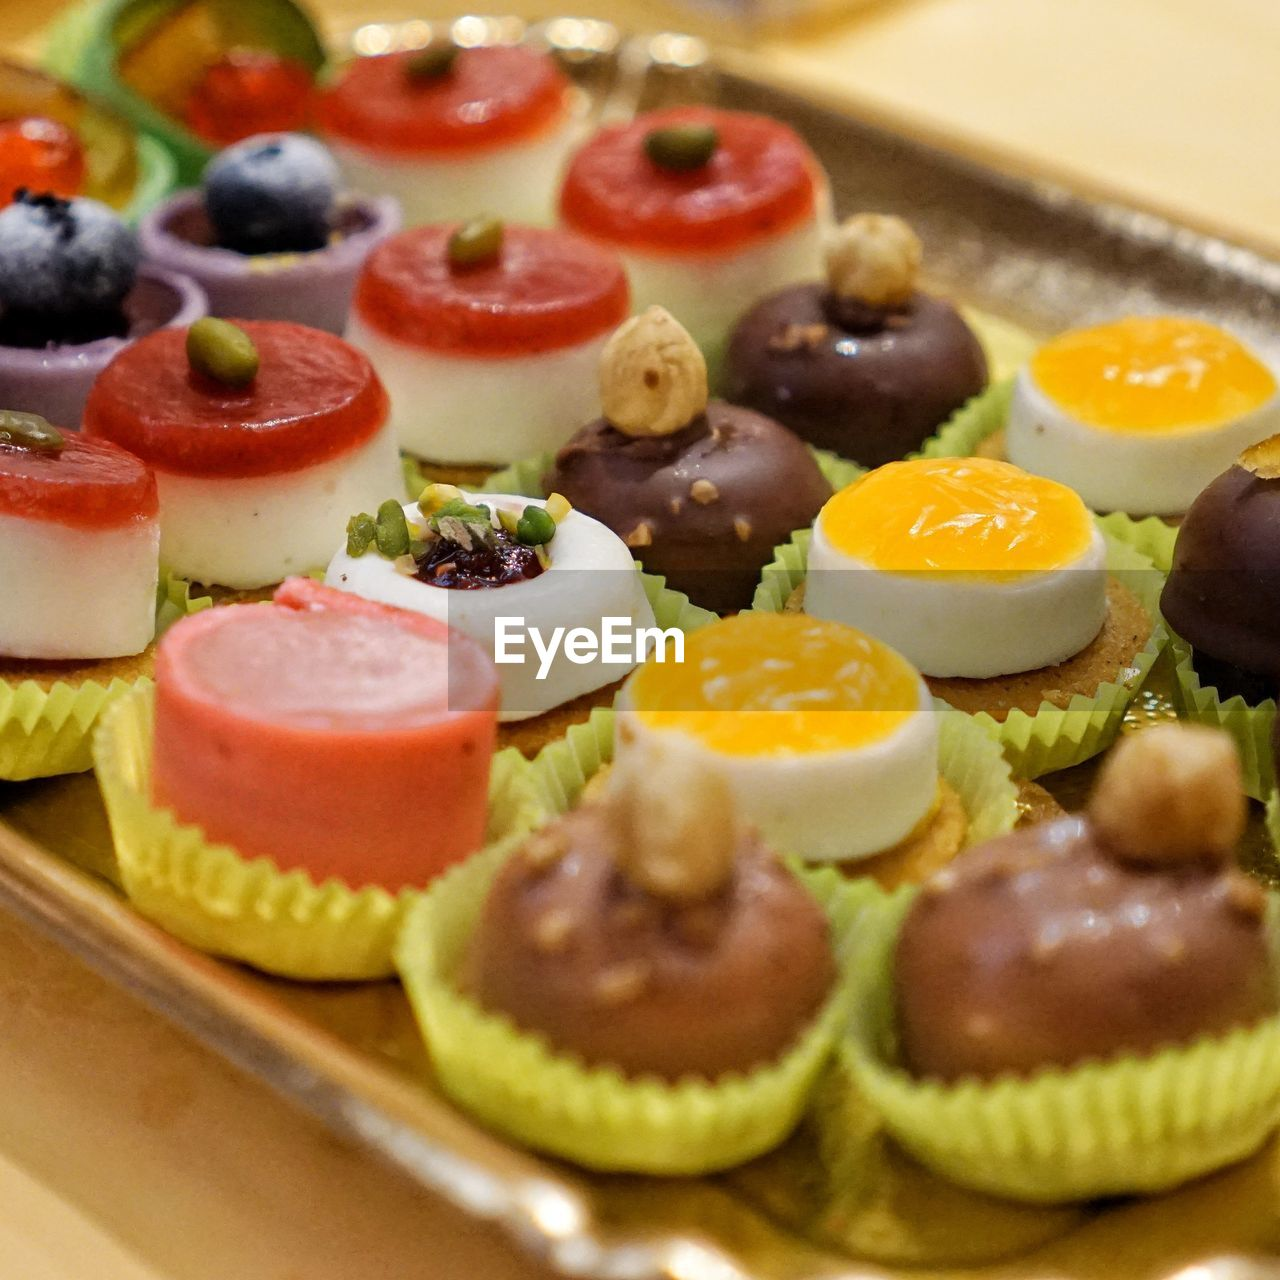 food, food and drink, freshness, still life, ready-to-eat, sweet food, indoors, healthy eating, sweet, dessert, indulgence, close-up, no people, fruit, temptation, selective focus, in a row, wellbeing, table, choice, tart - dessert, breakfast, tray